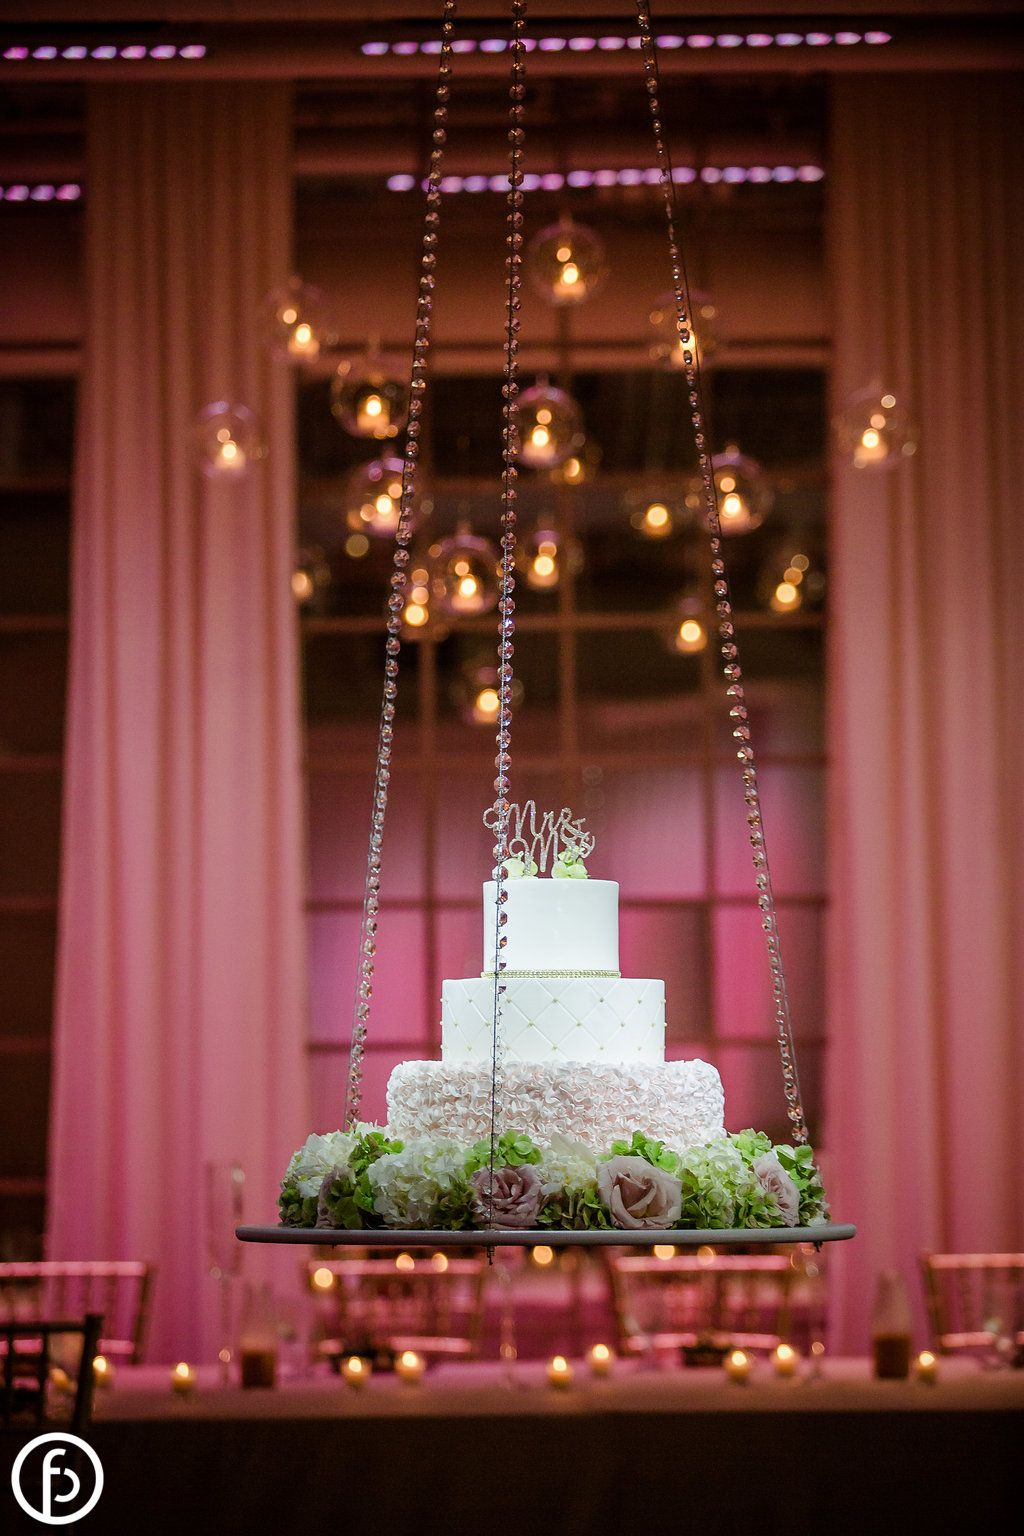 Be Inspired With A Suspended Wedding Cake This Beautiful Blush And White Cake Looks Like It Wedding Cake Table Suspended Wedding Cake Wedding Cake Decorations